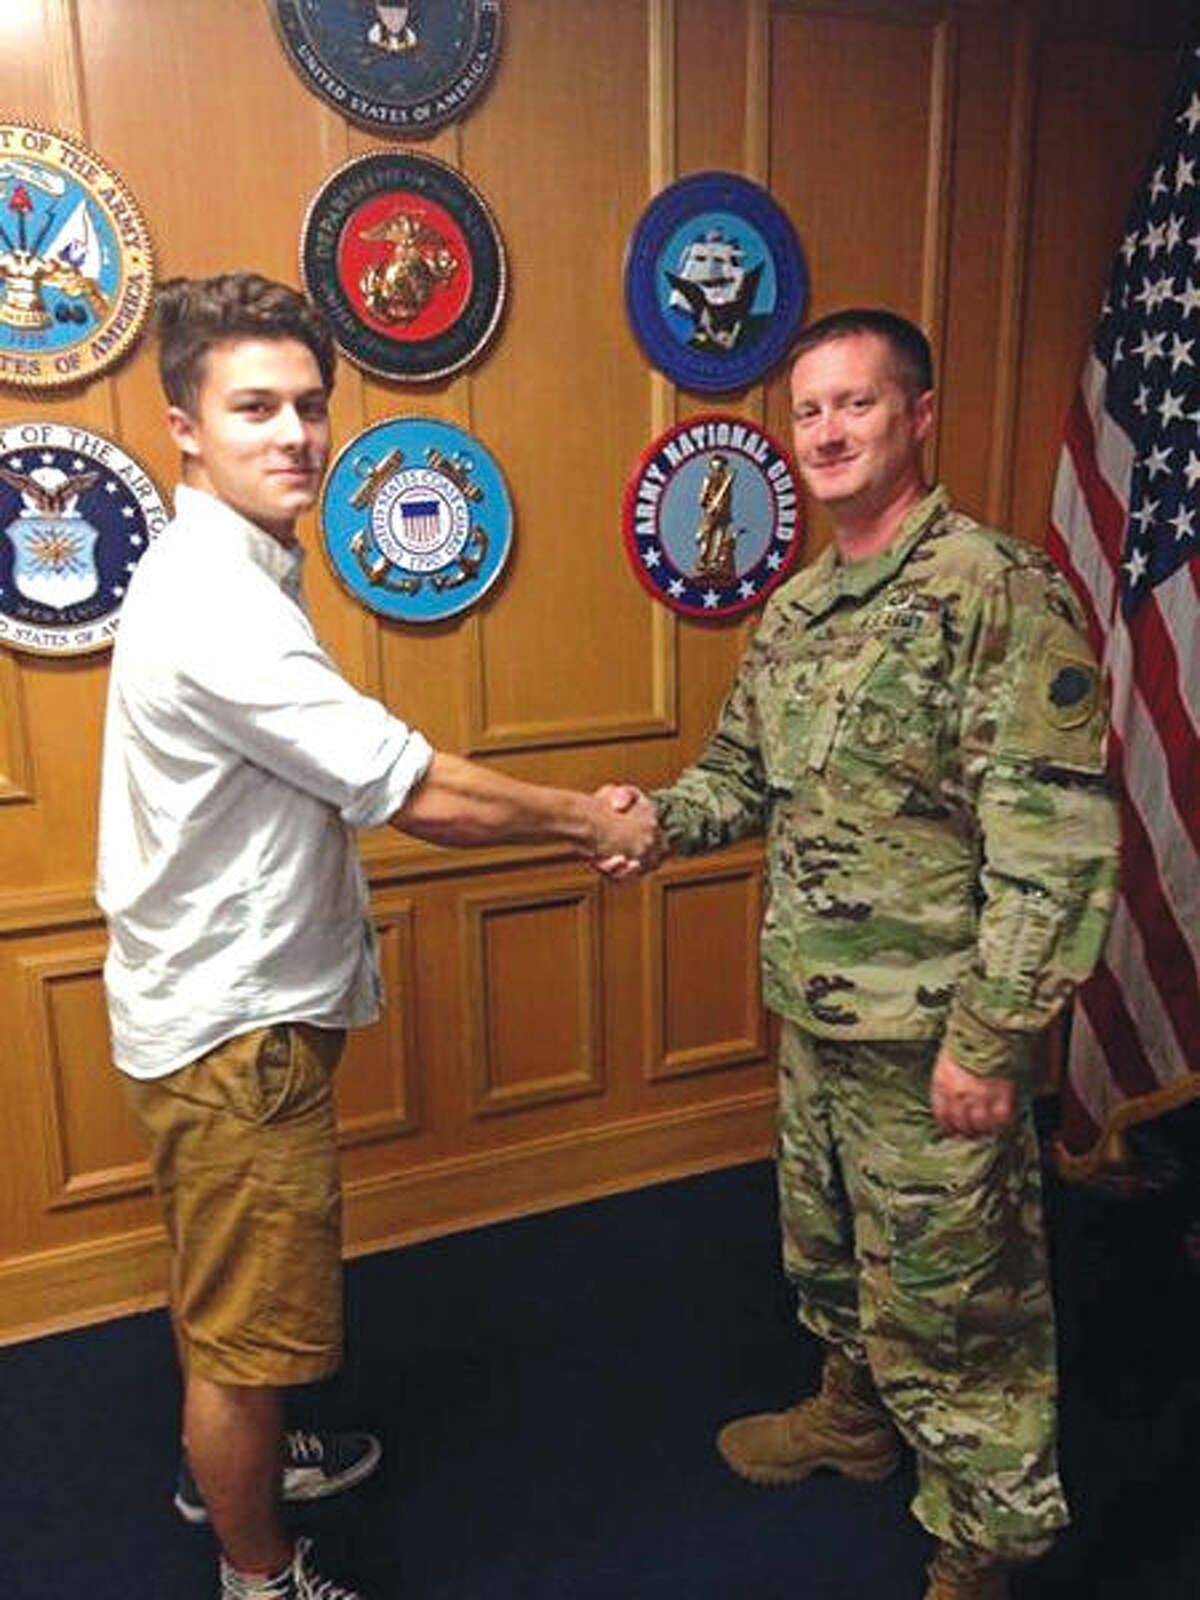 Seth Davey, a senior at Edwardsville High School, shakes hands with Staff Sgt. Ty Lipe, a recruiter with Company M, Recruit Sustainment Program based in East St. Louis after Davey's enlistment ceremony in St. Louis. Davey will drill with Mike Co until he graduates and moves on to train as a human intelligence collector. Upon completion of basic training and his advanced individual training, Davey will be assigned to Headquarters and Headquarters Company, 634th Brigade Support Battalion based in Sullivan, Ill.